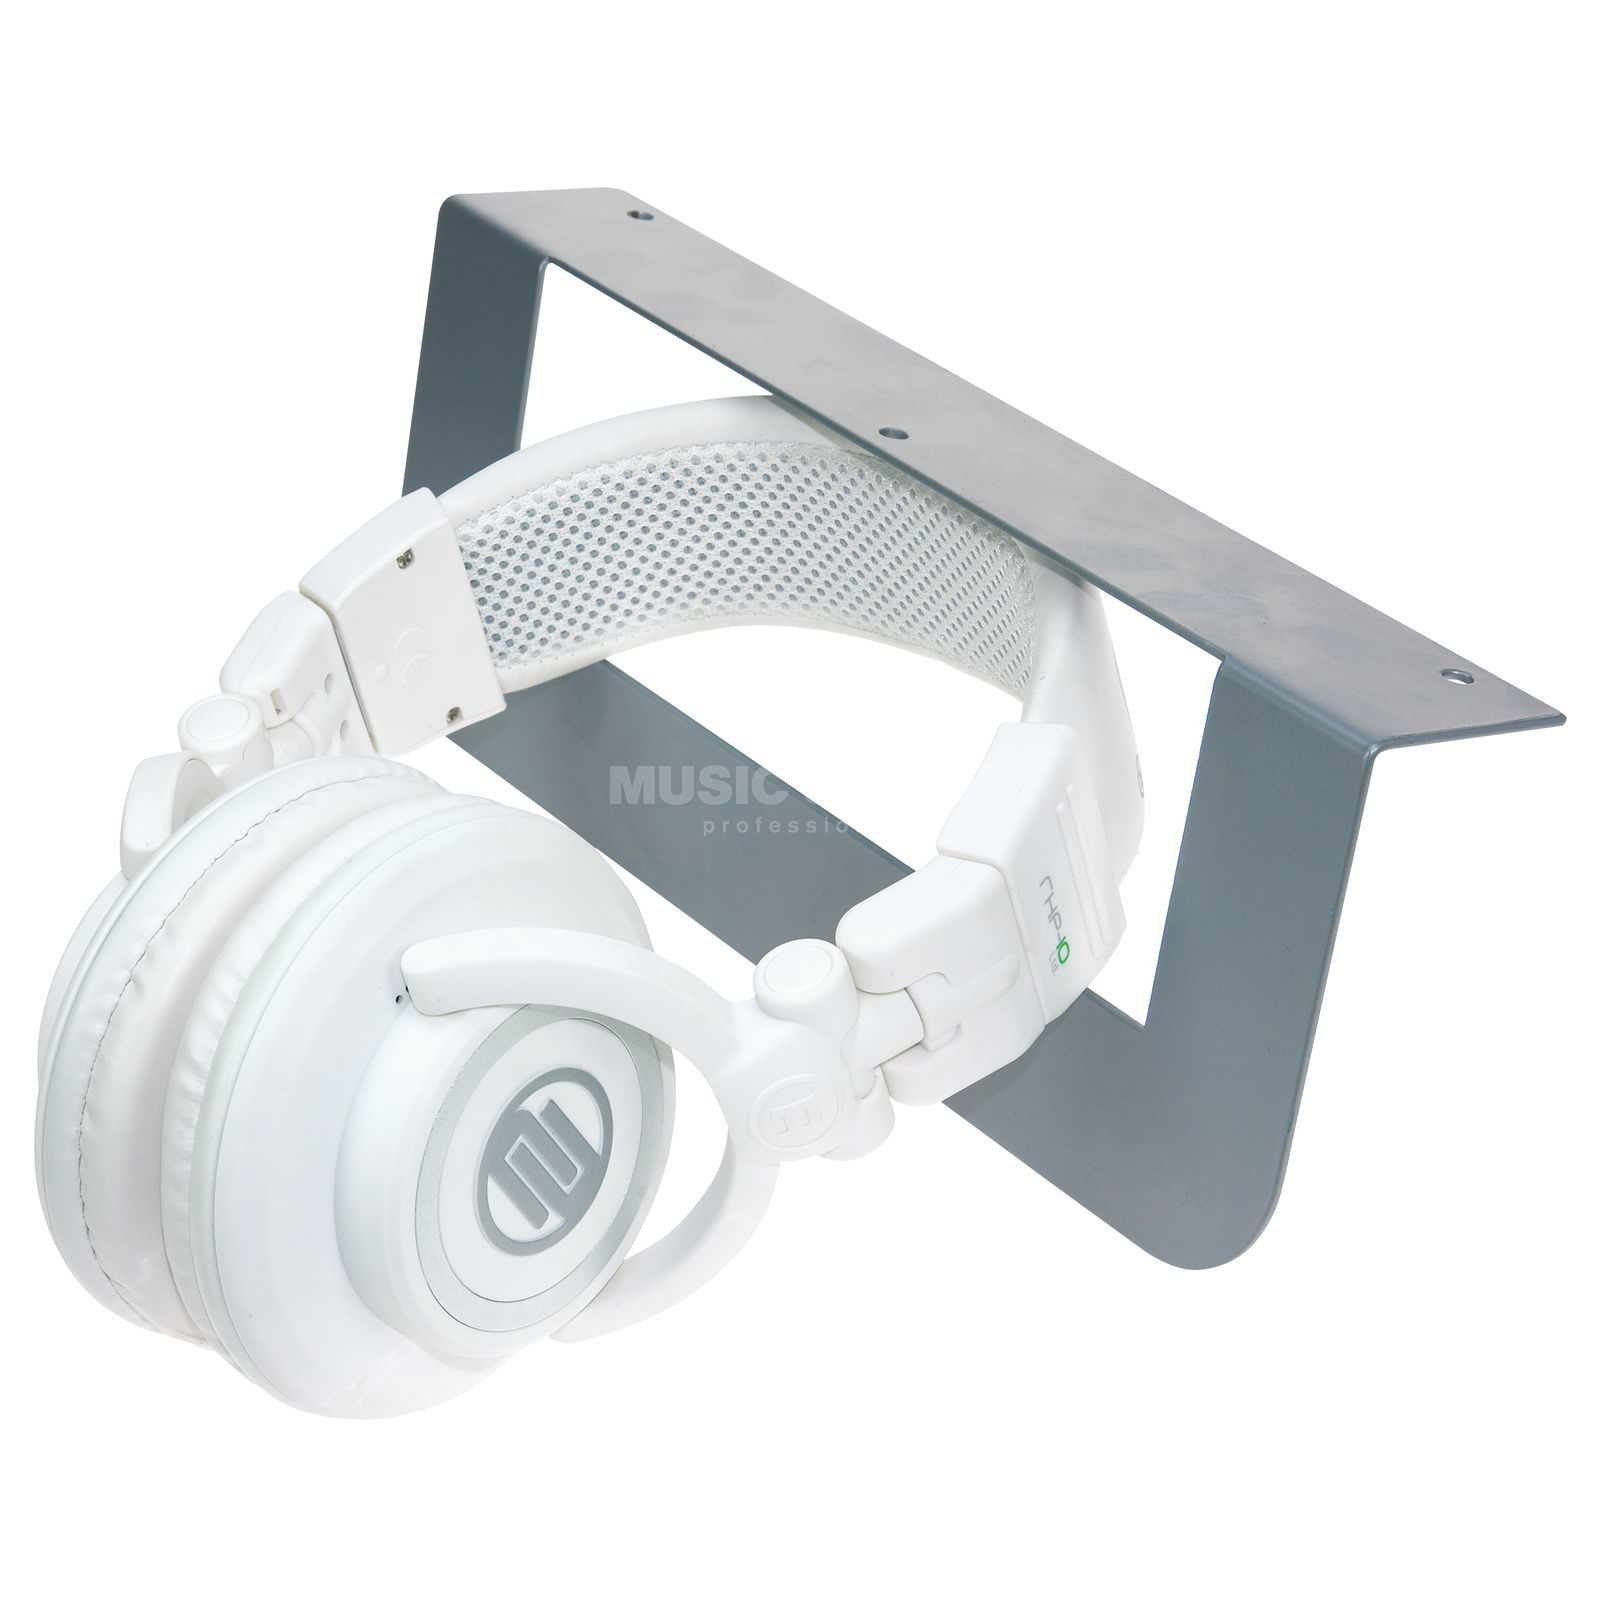 Glorious Headphones Holder  Produktbild